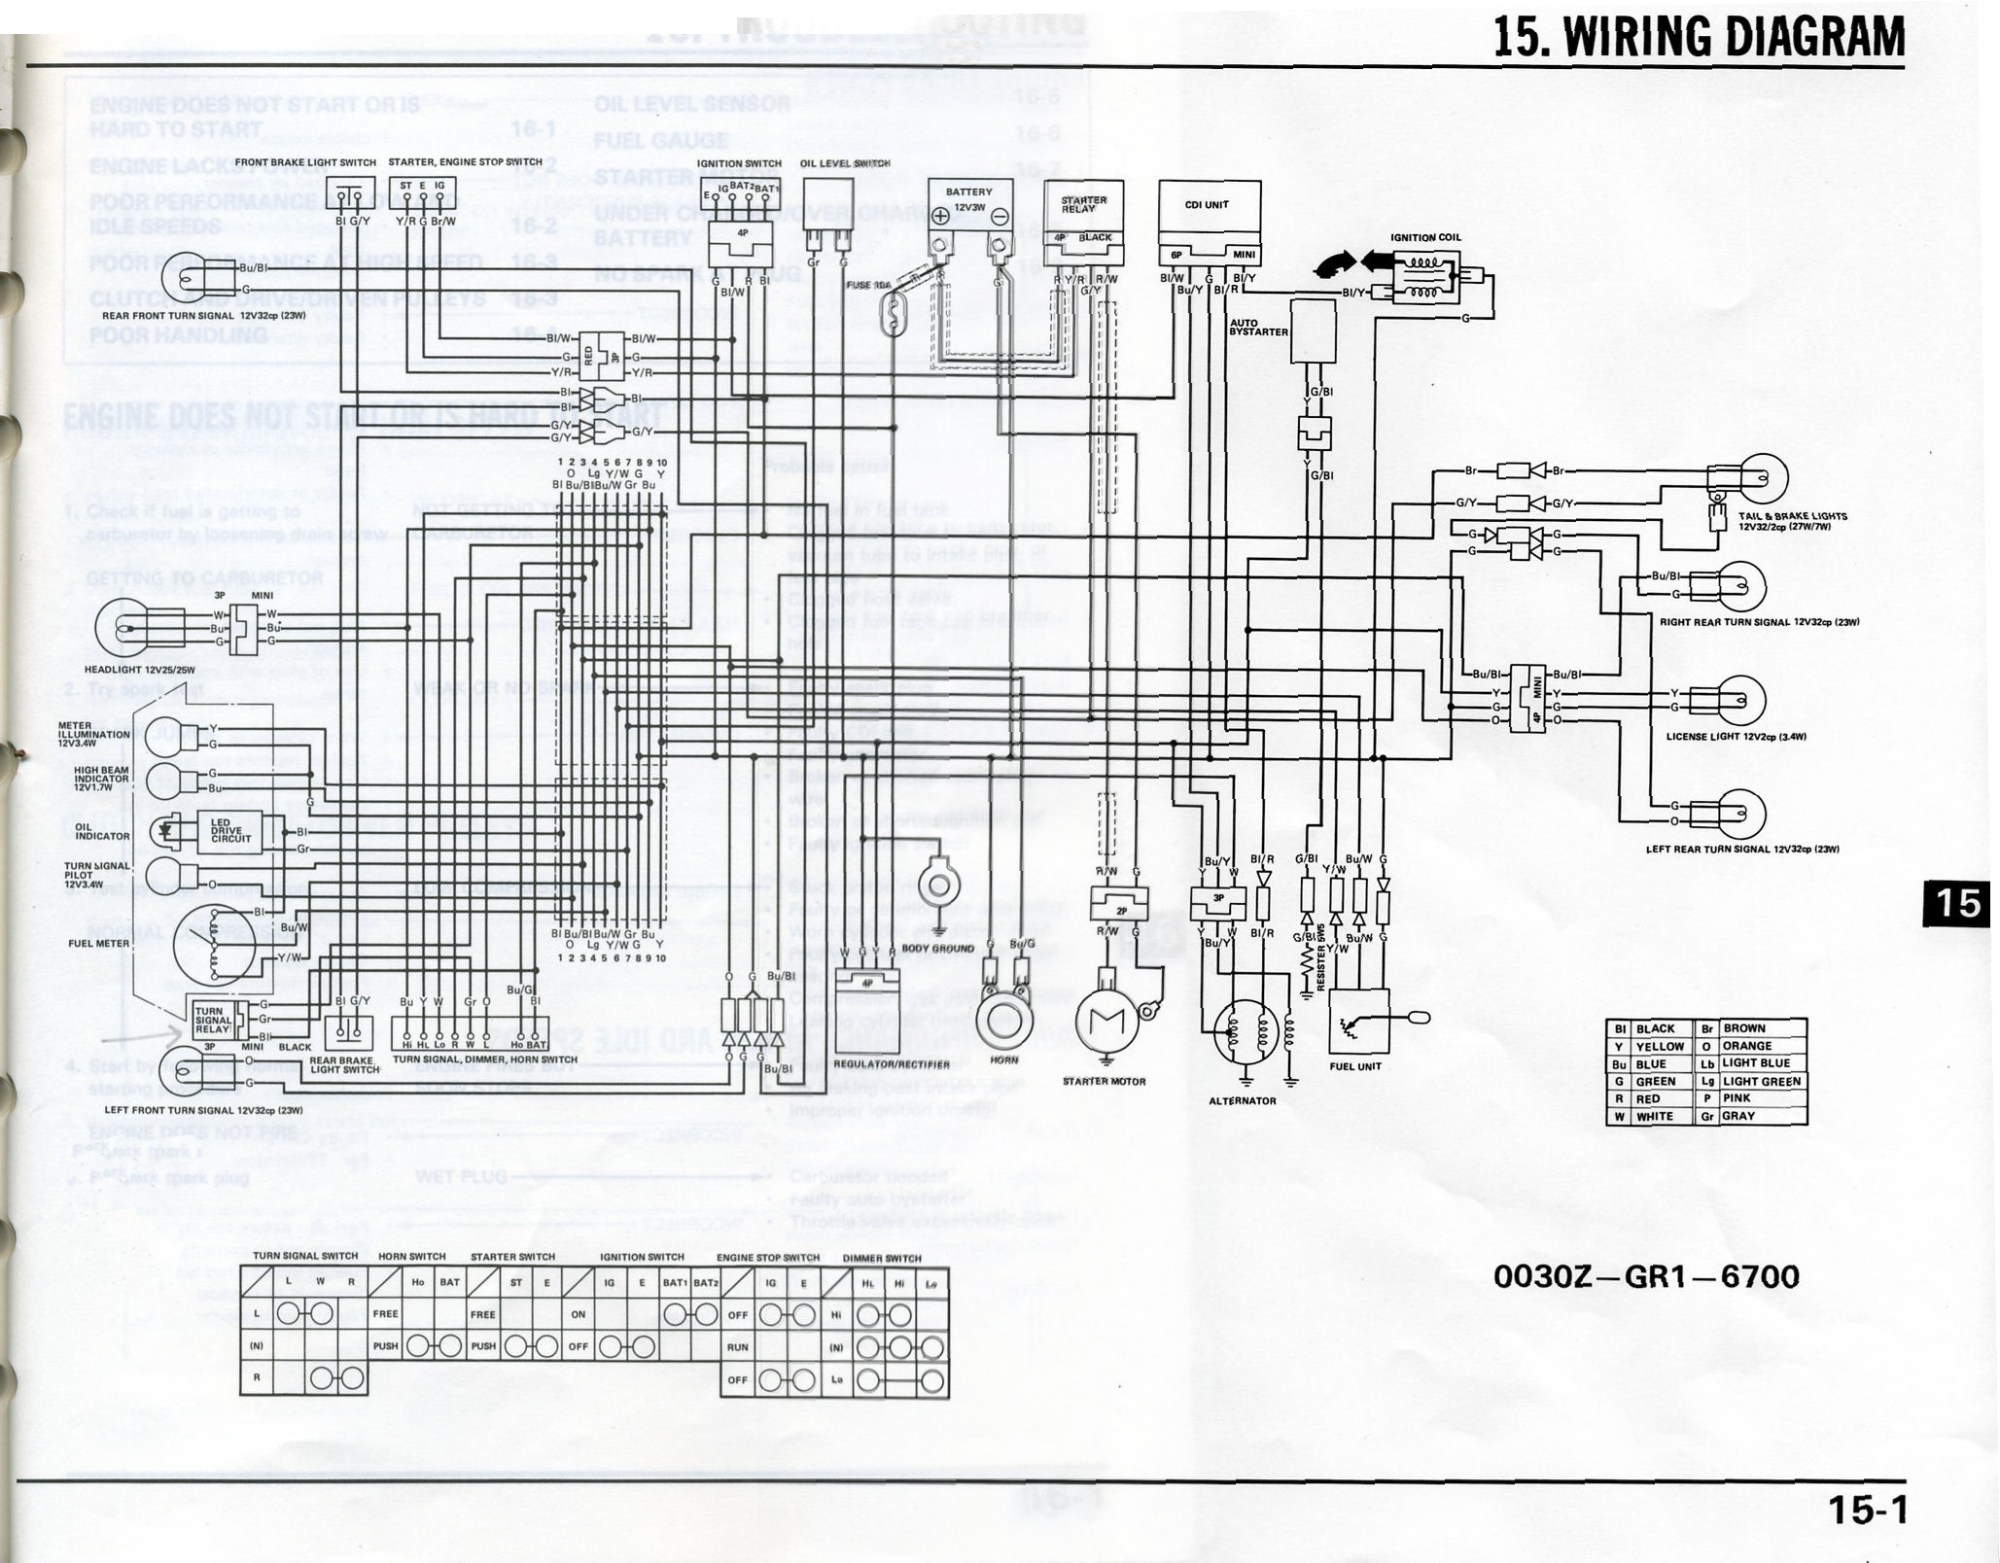 hight resolution of 89 honda elite wiring experts of wiring diagram u2022 rh evilcloud co uk 89 honda accord